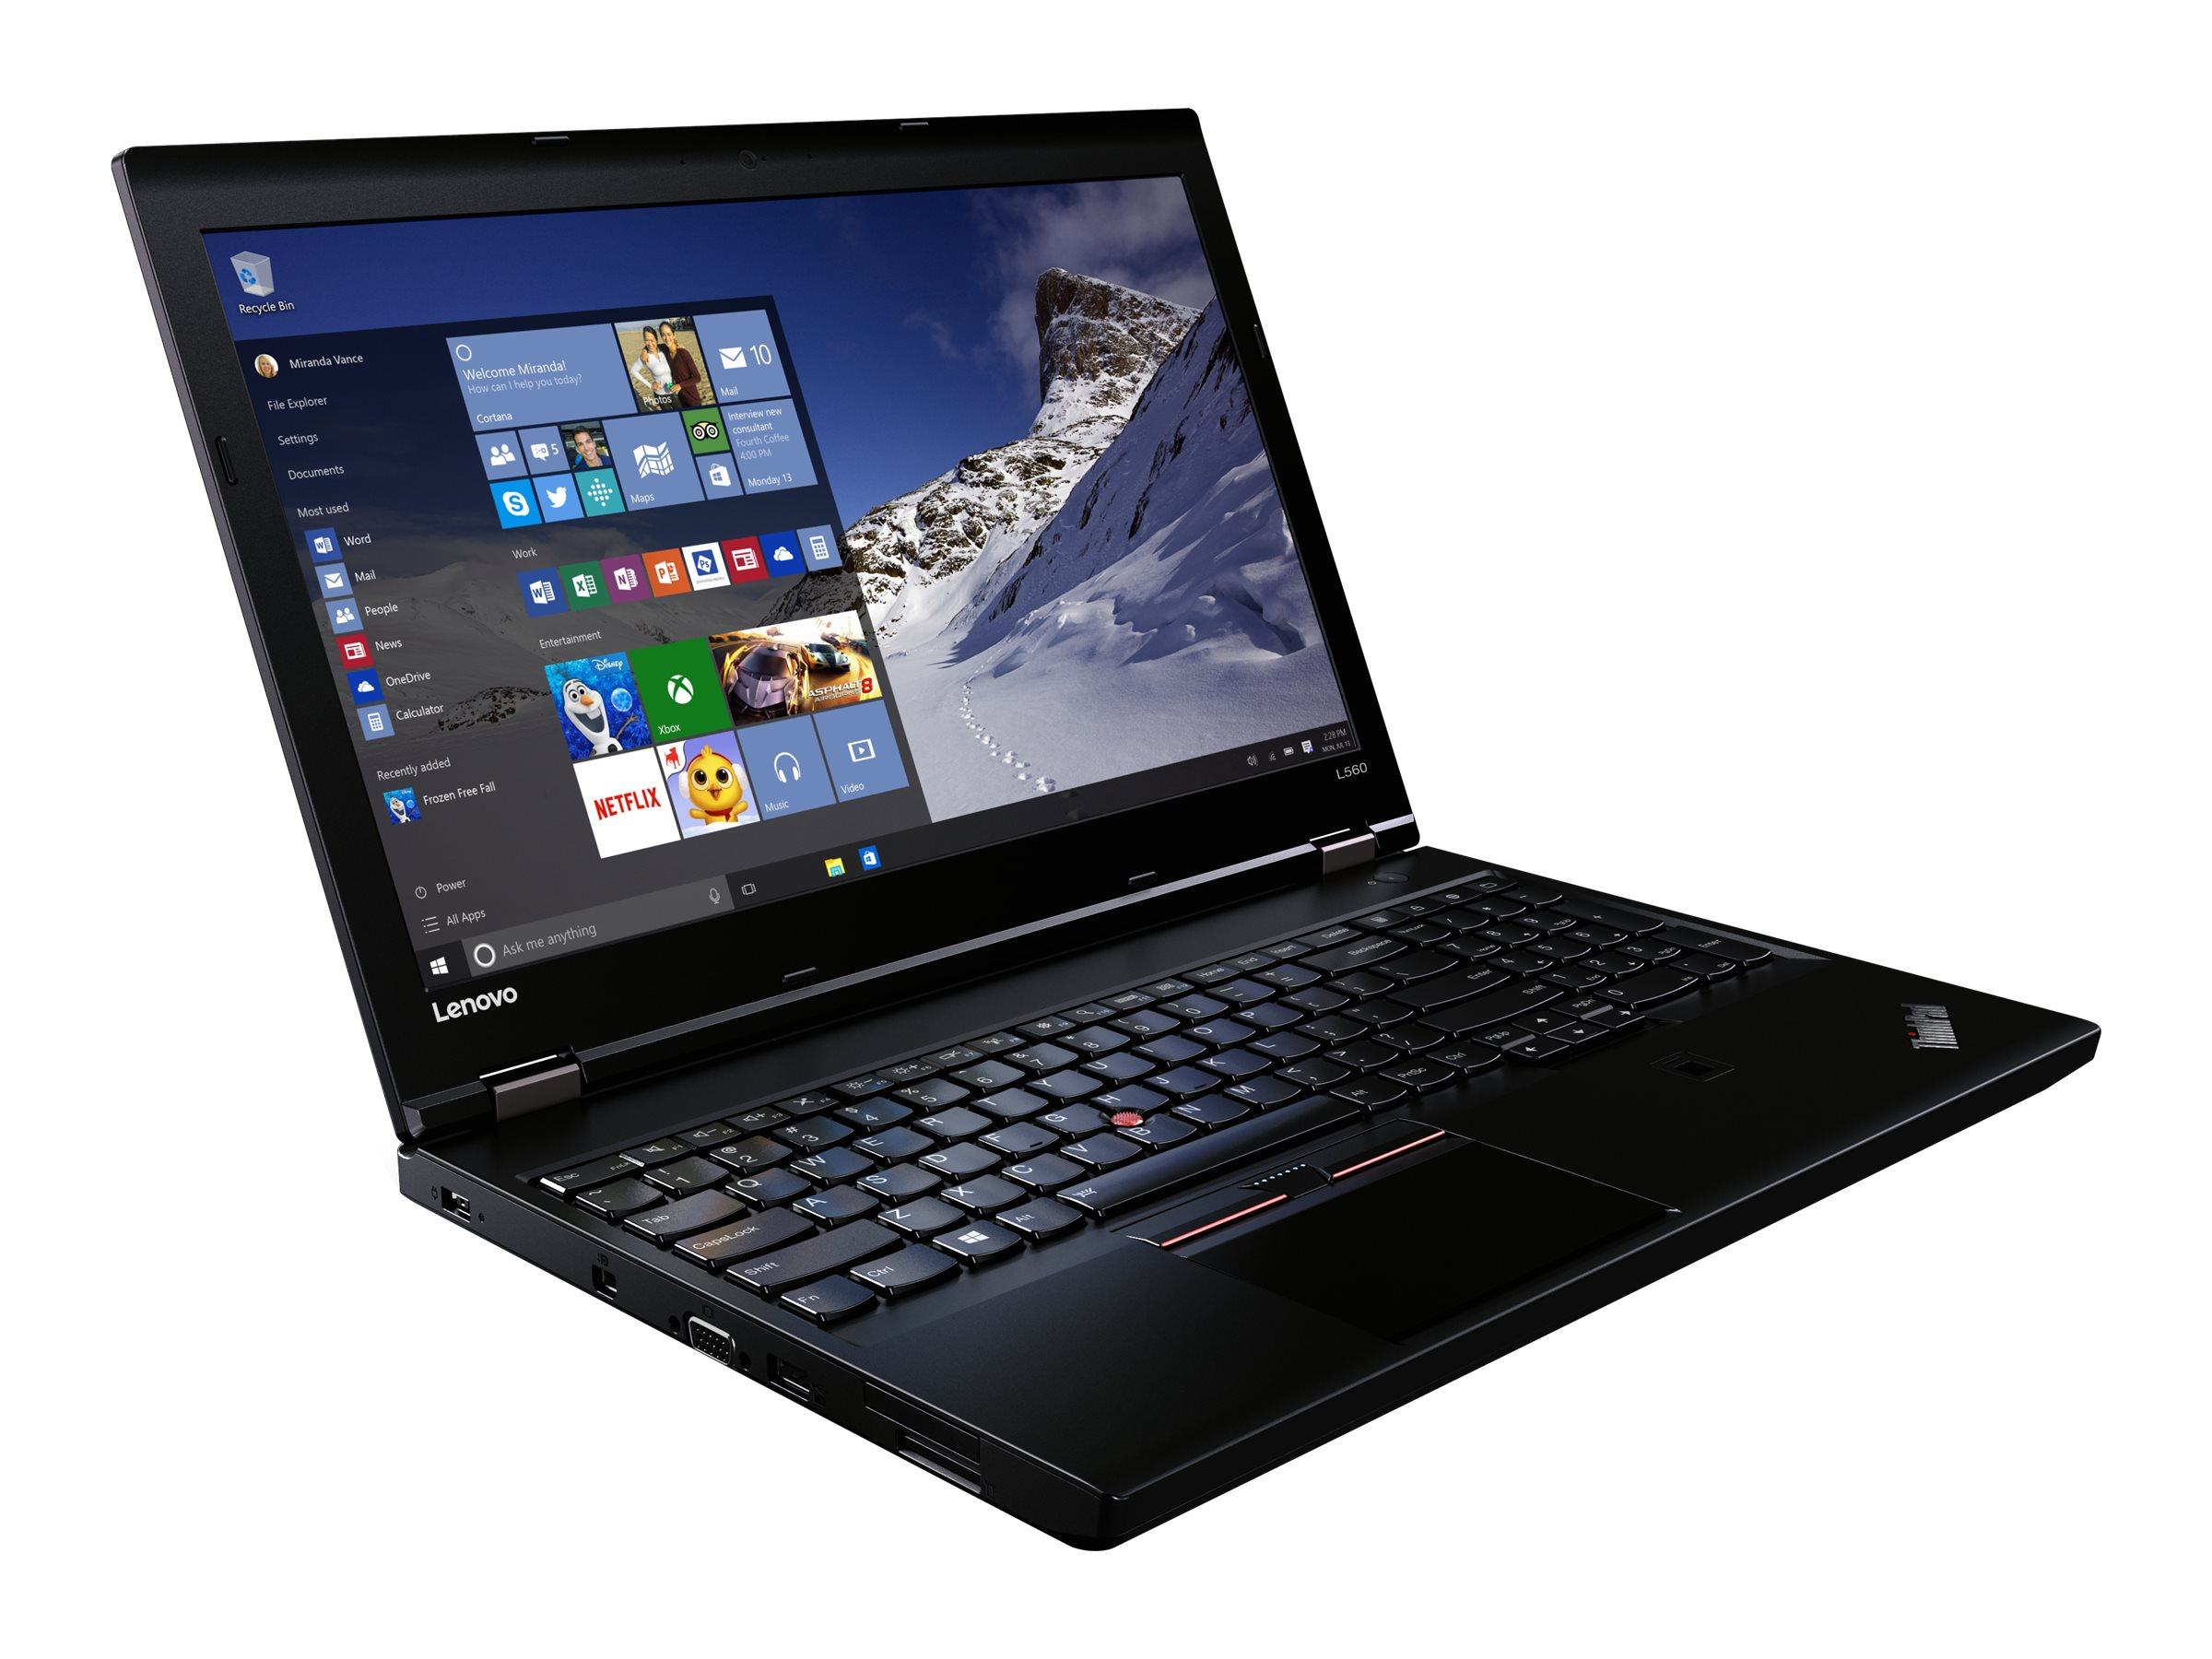 Lenovo TopSeller ThinkPad L560 2.4GHz Core i5 15.6in display, 20F1002AUS, 31866827, Notebooks